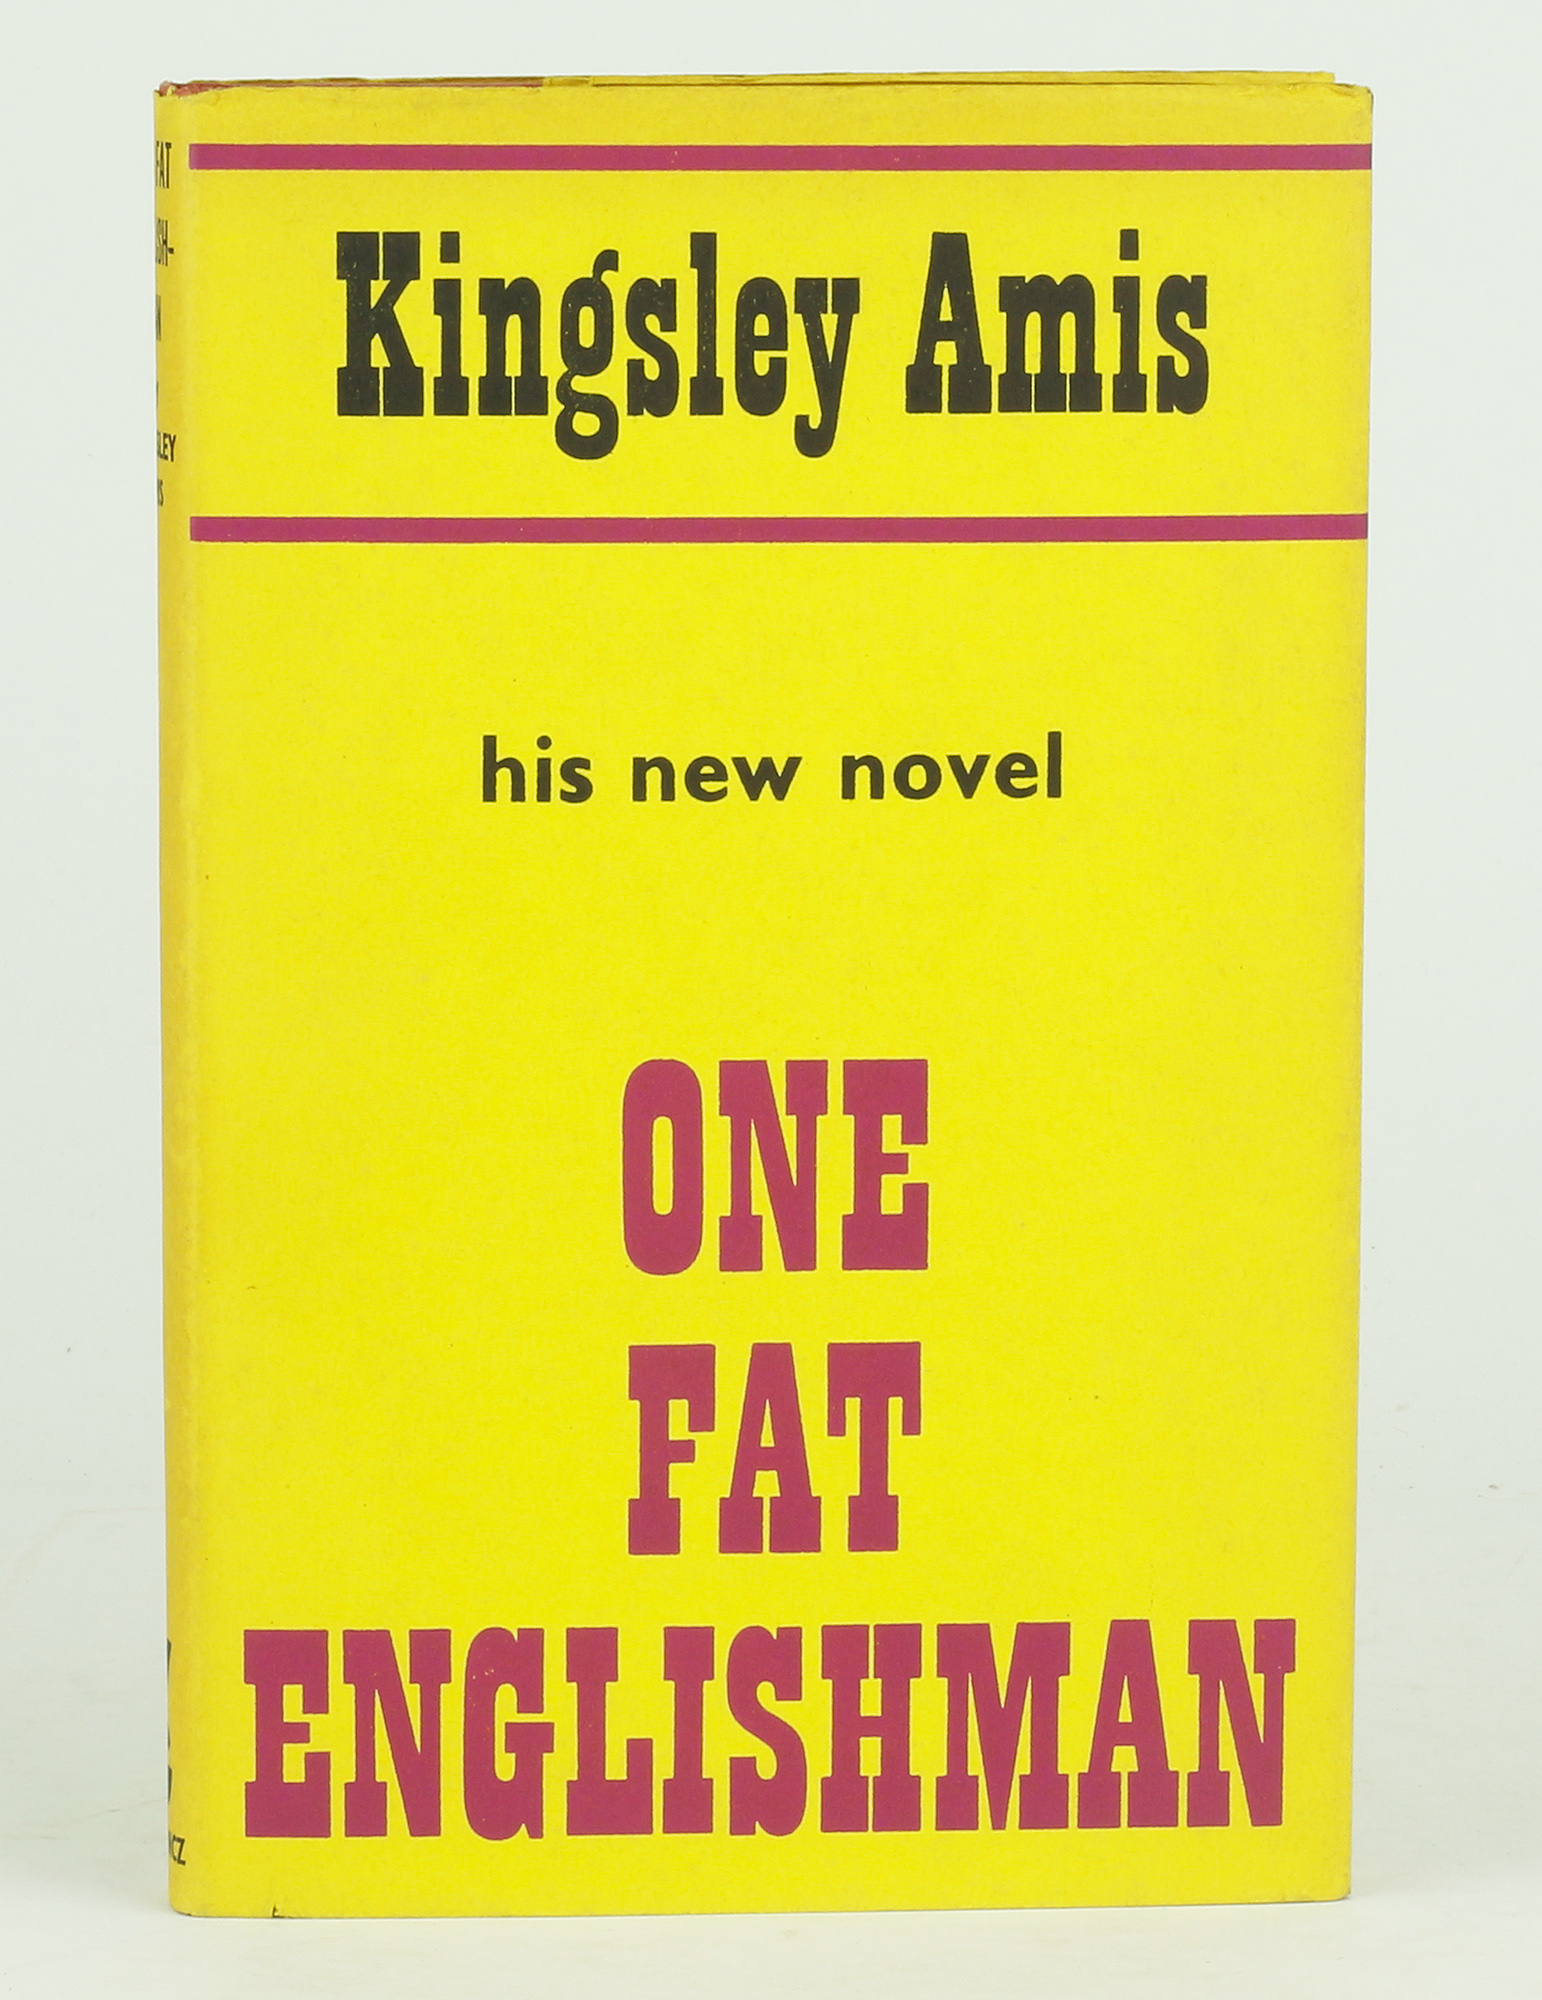 an analysis of one fat englishman by kingsley amis Larkin, kingsley amis and martin amis through a detailed examination of their   {one fat englishman} reminded me more of lj [lucky jim], where a nasty.